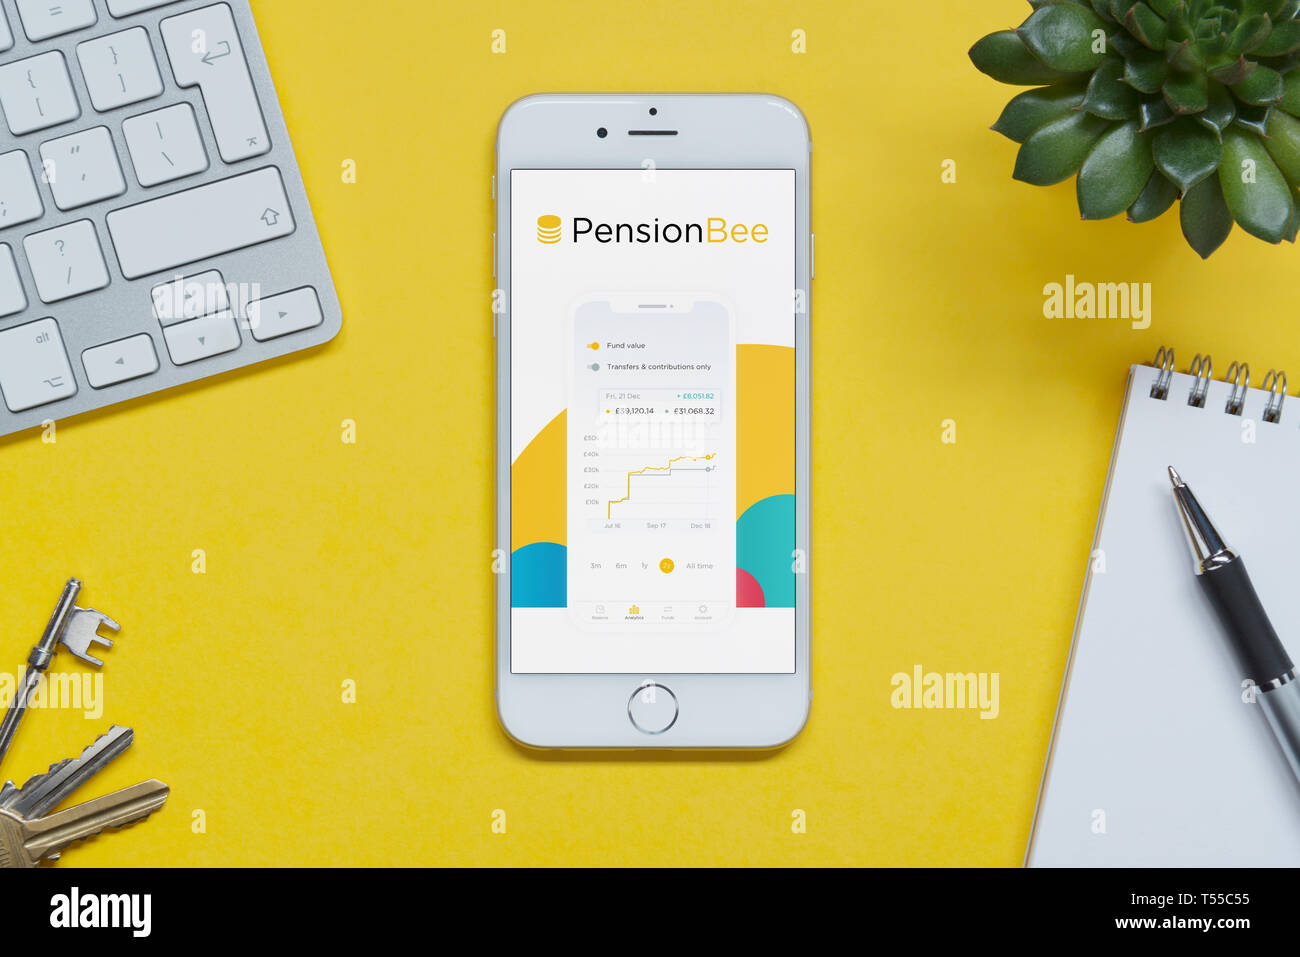 An iPhone showing the Pension Bee website rests on a yellow background table with a keyboard, keys, notepad and plant (Editorial use only). - Stock Image